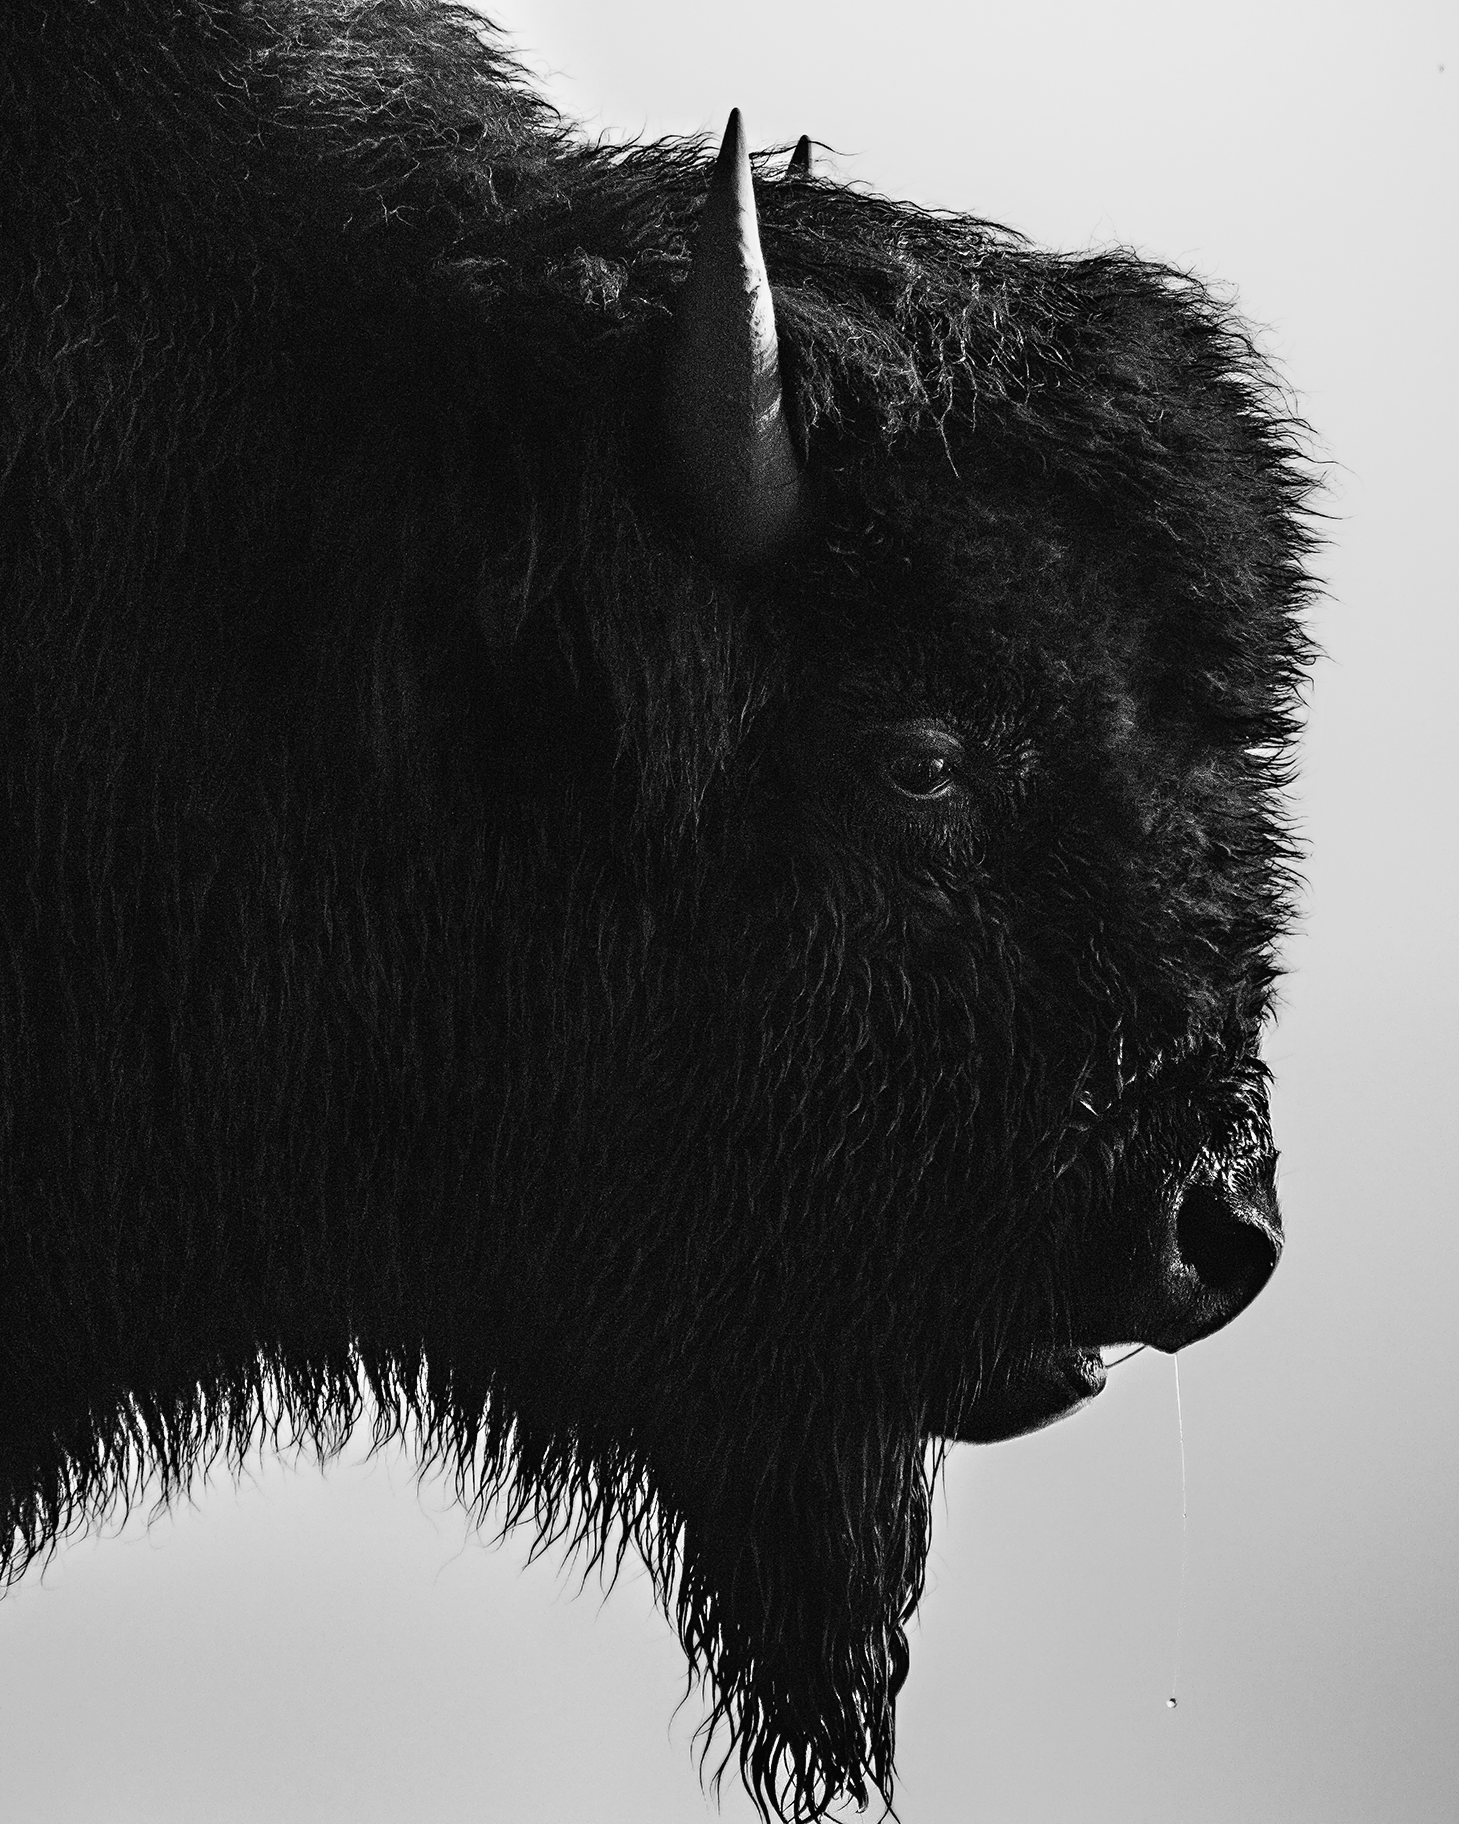 Bison  Yellowstone National Park, MT 2017